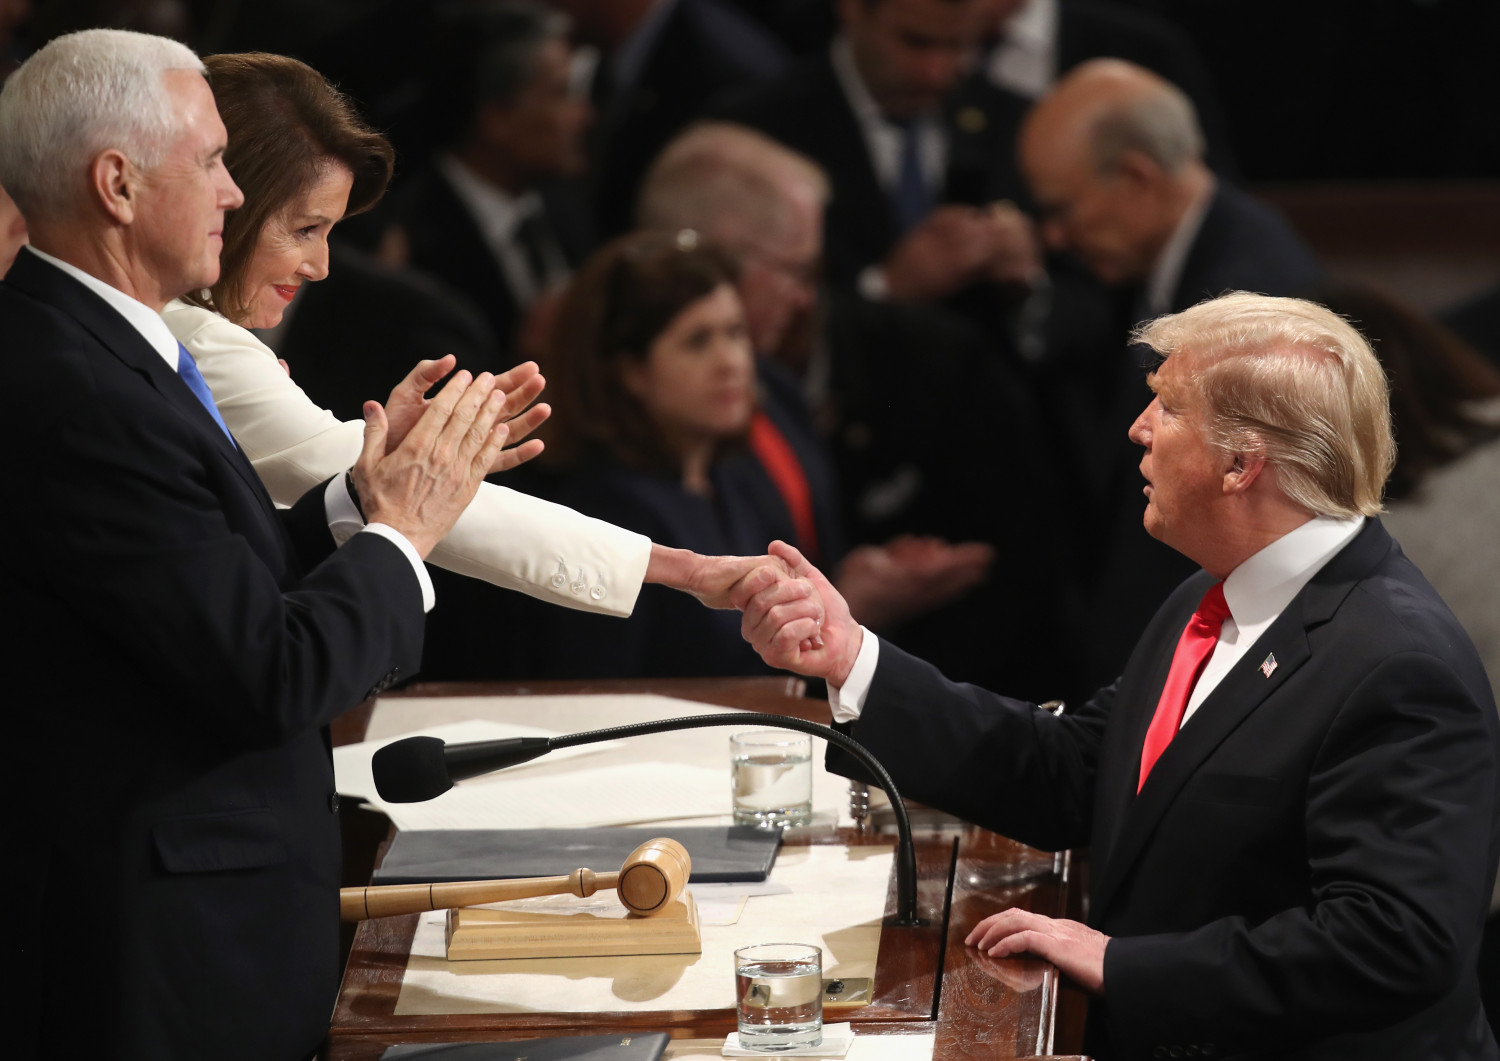 President Donald Trump shakes hands with Speaker Nancy Pelosi, with Vice President Mike Pence